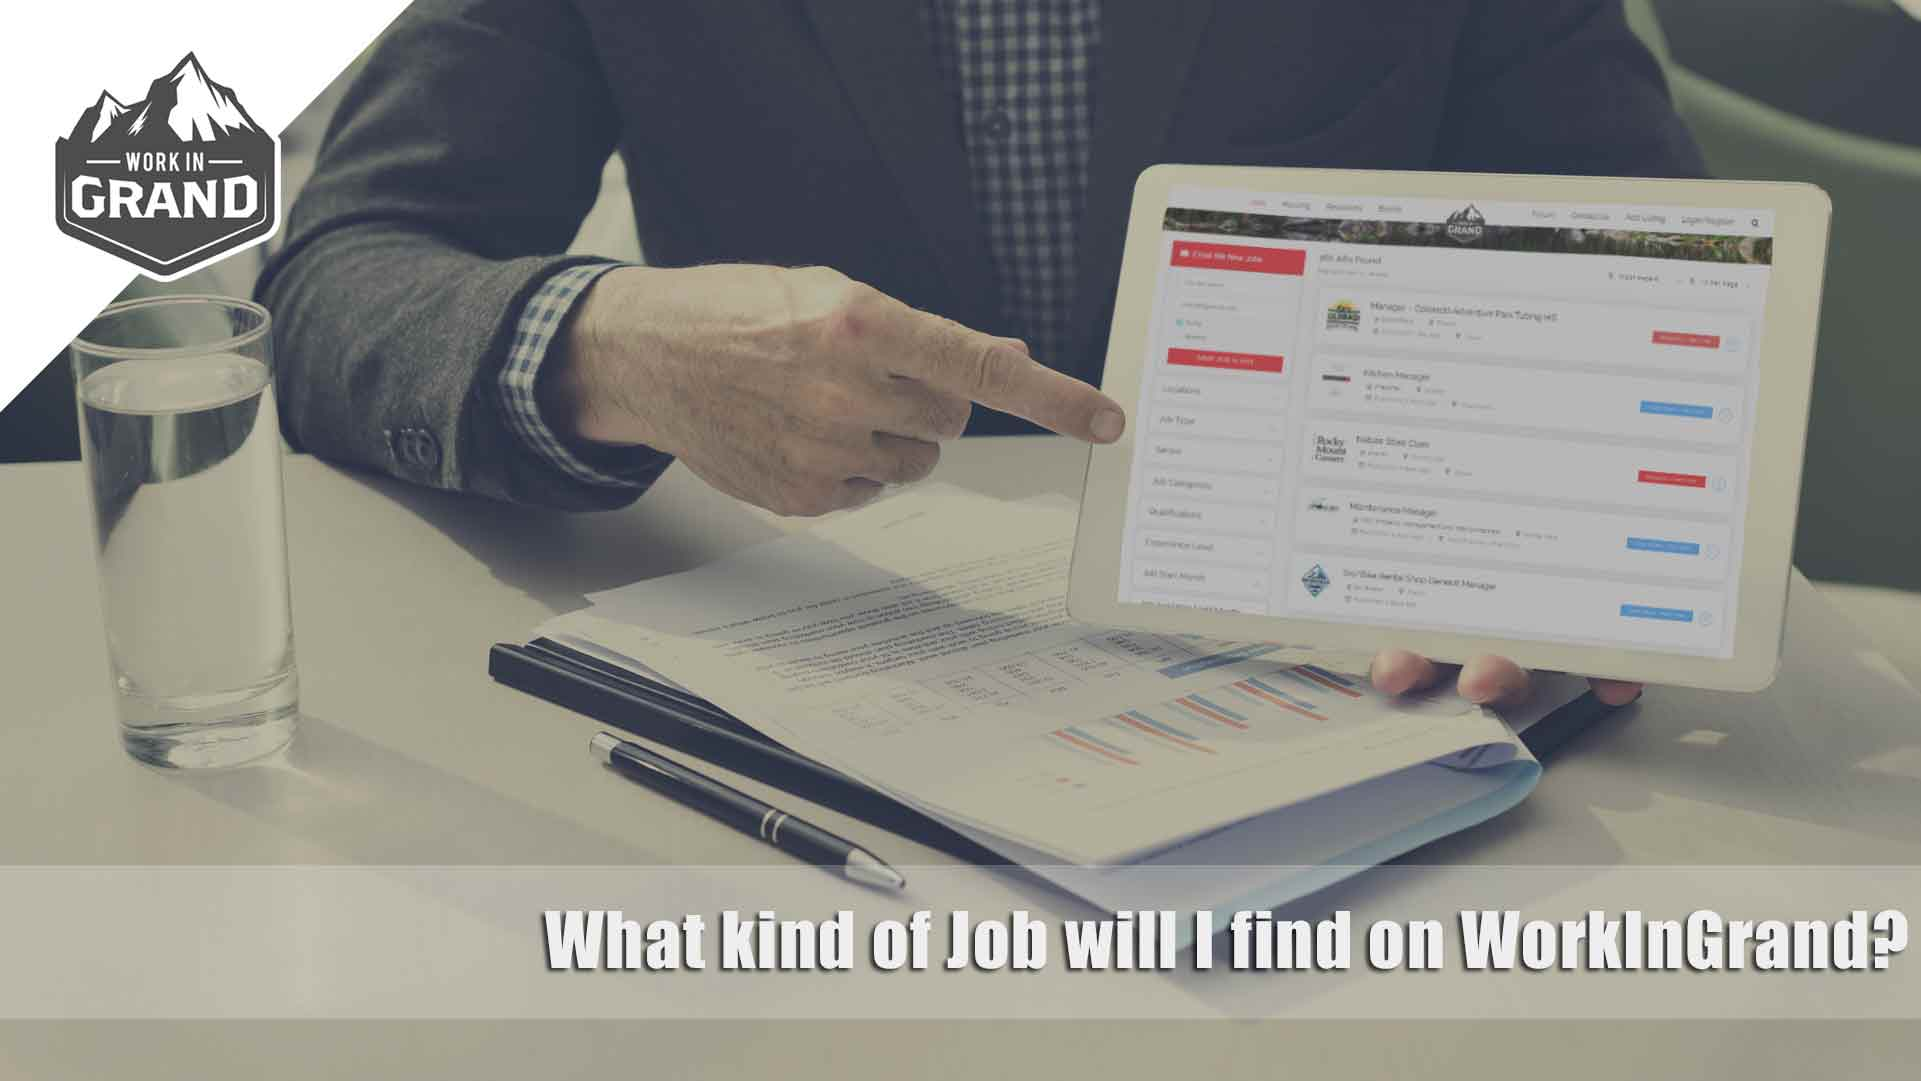 What kind of Job will I find on WorkInGrand?